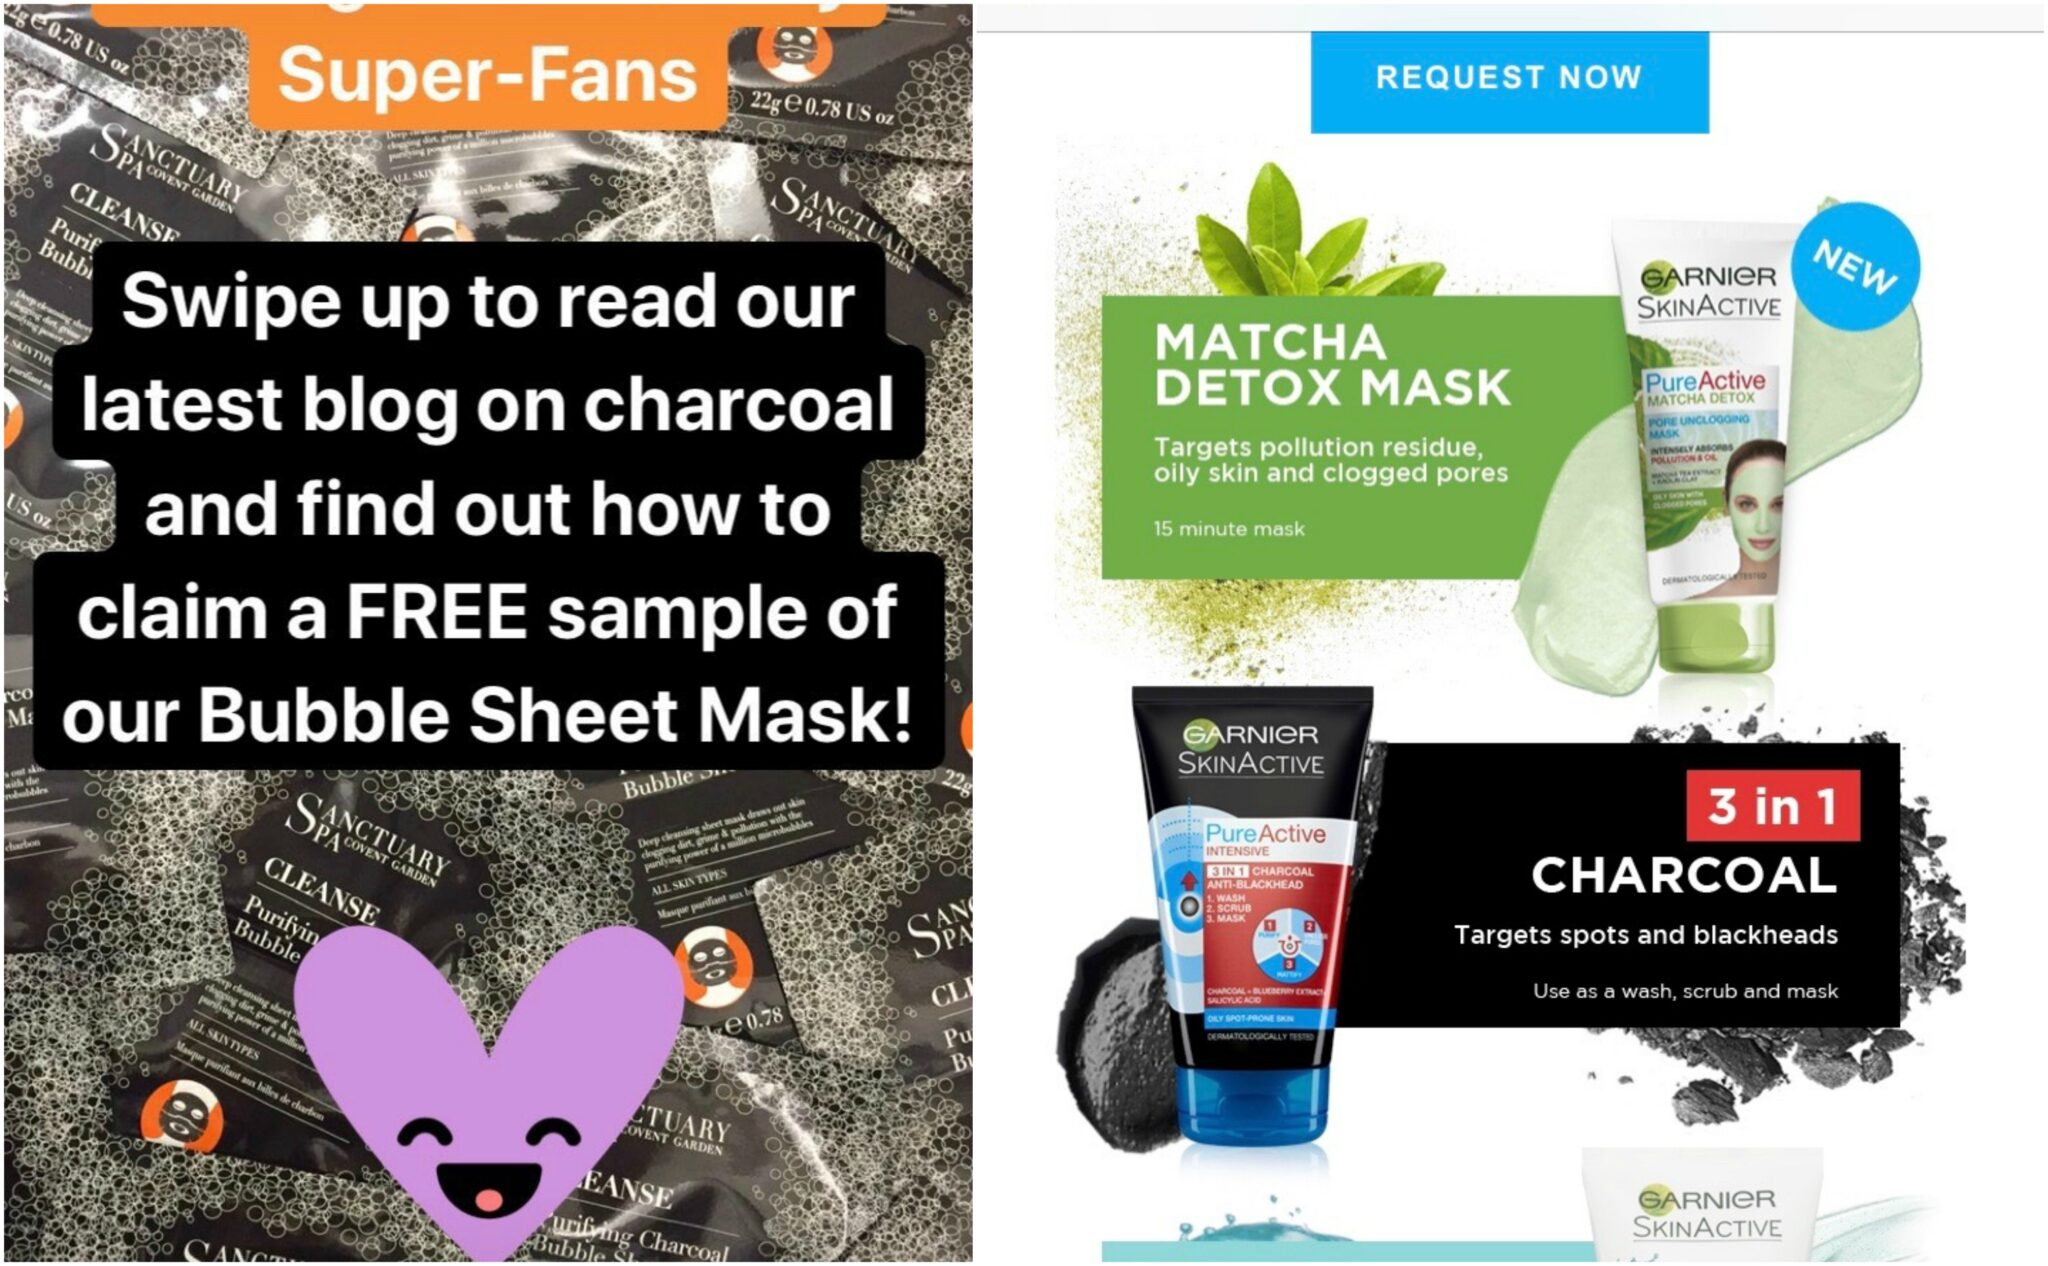 Free Sanctuary and Garnier Masks